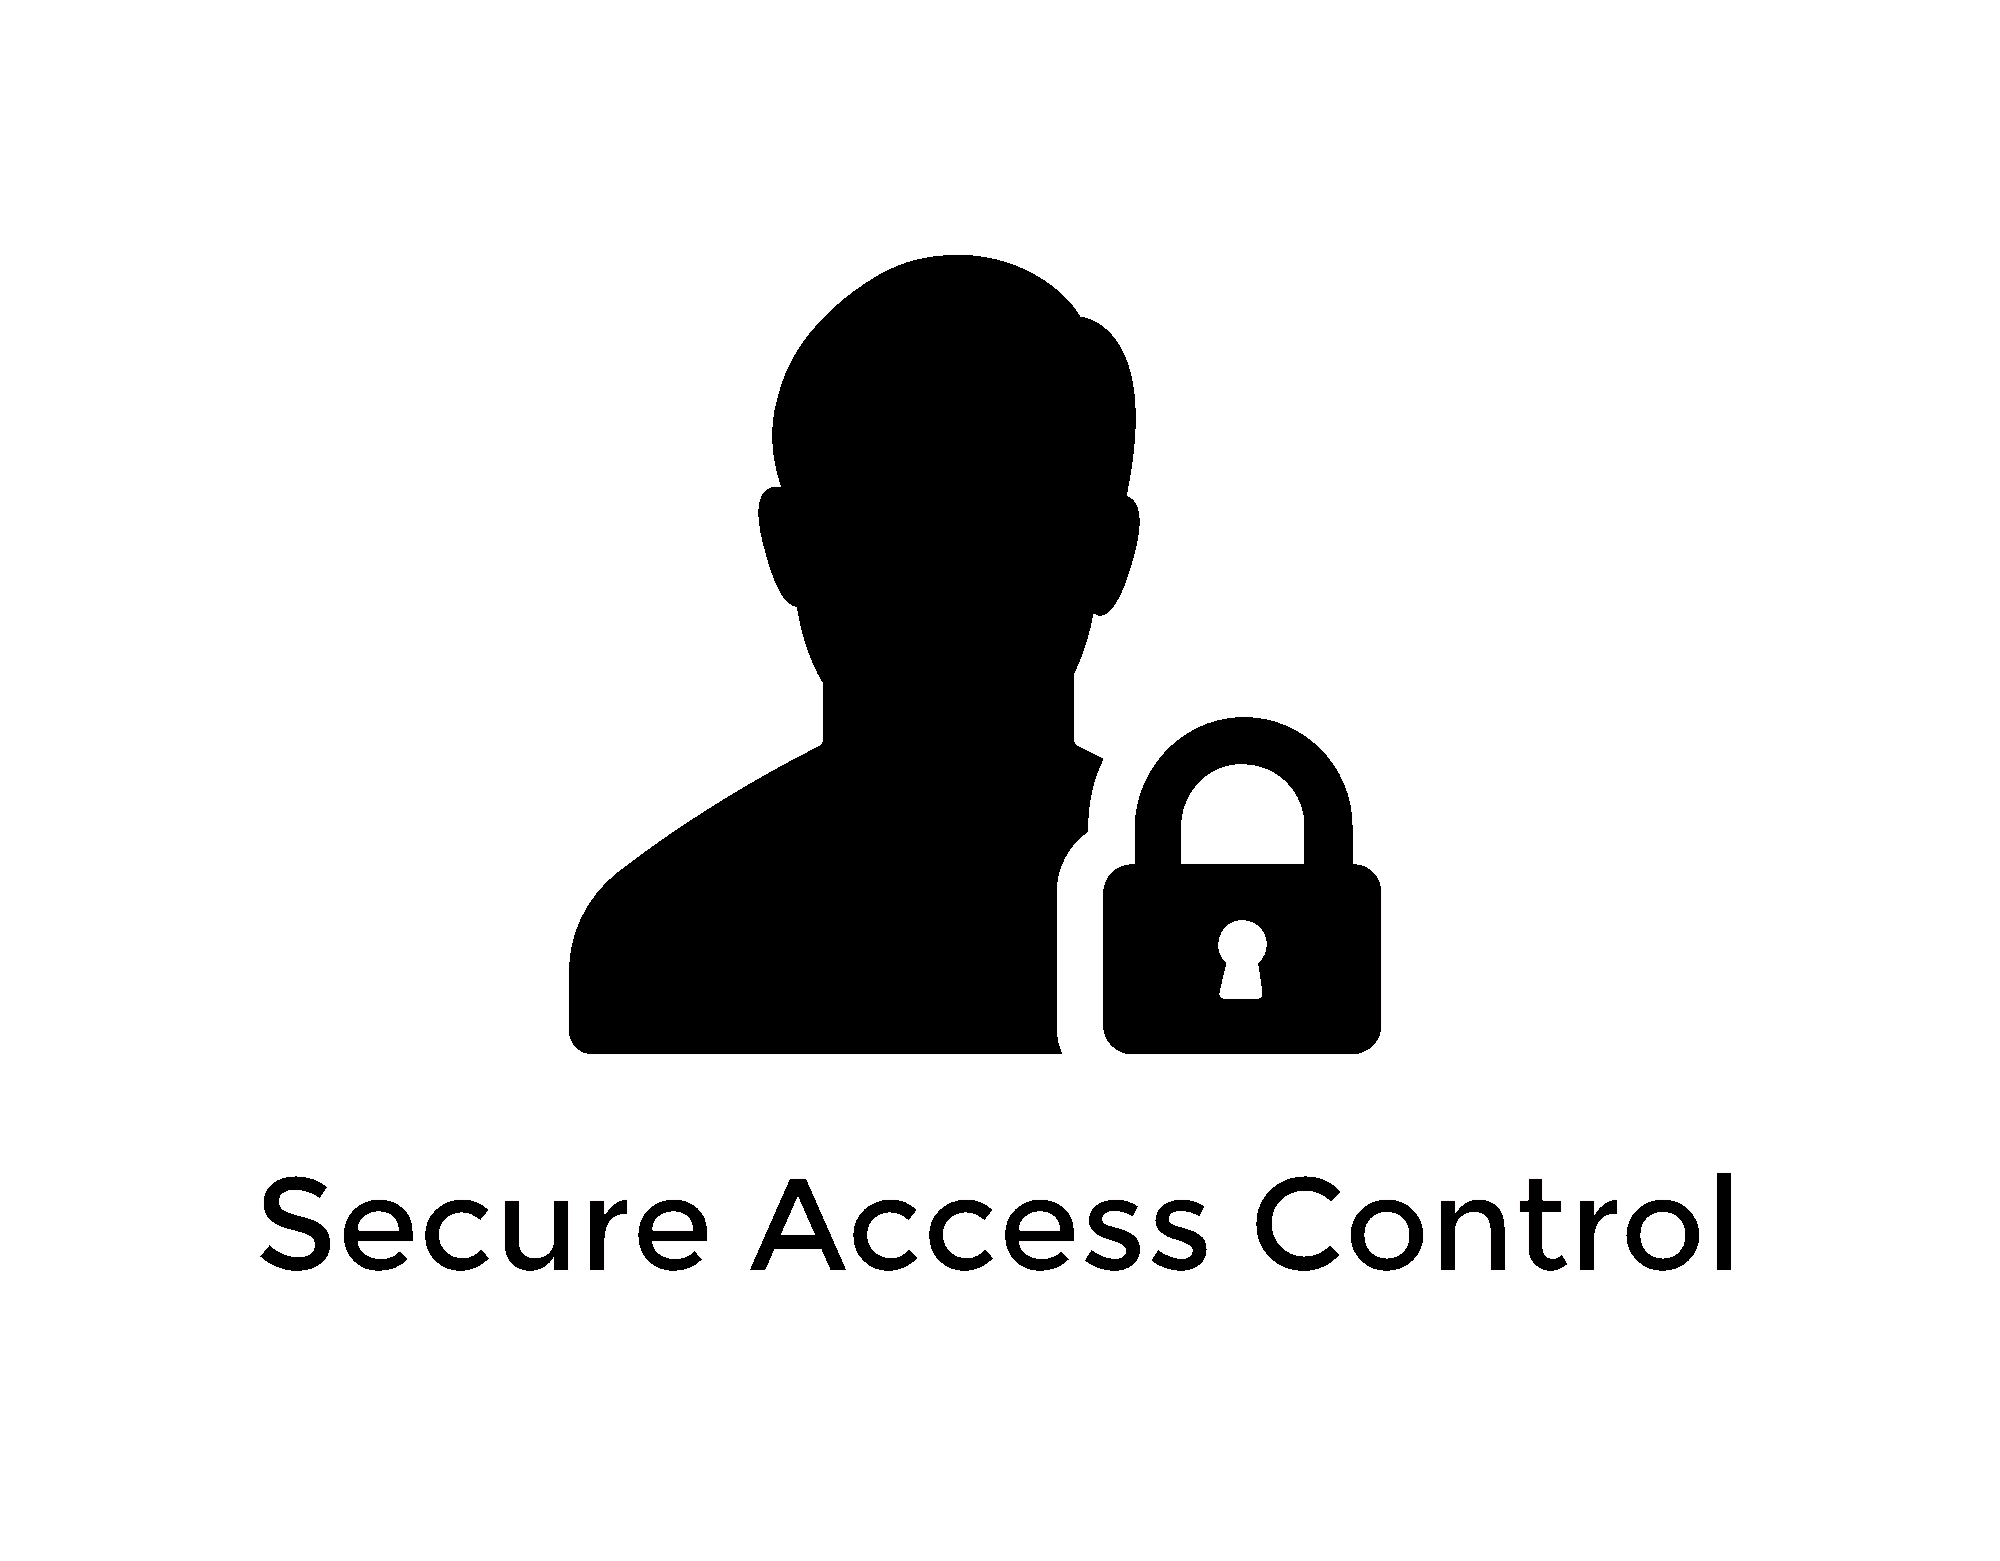 Secure Access Control-logo black.png